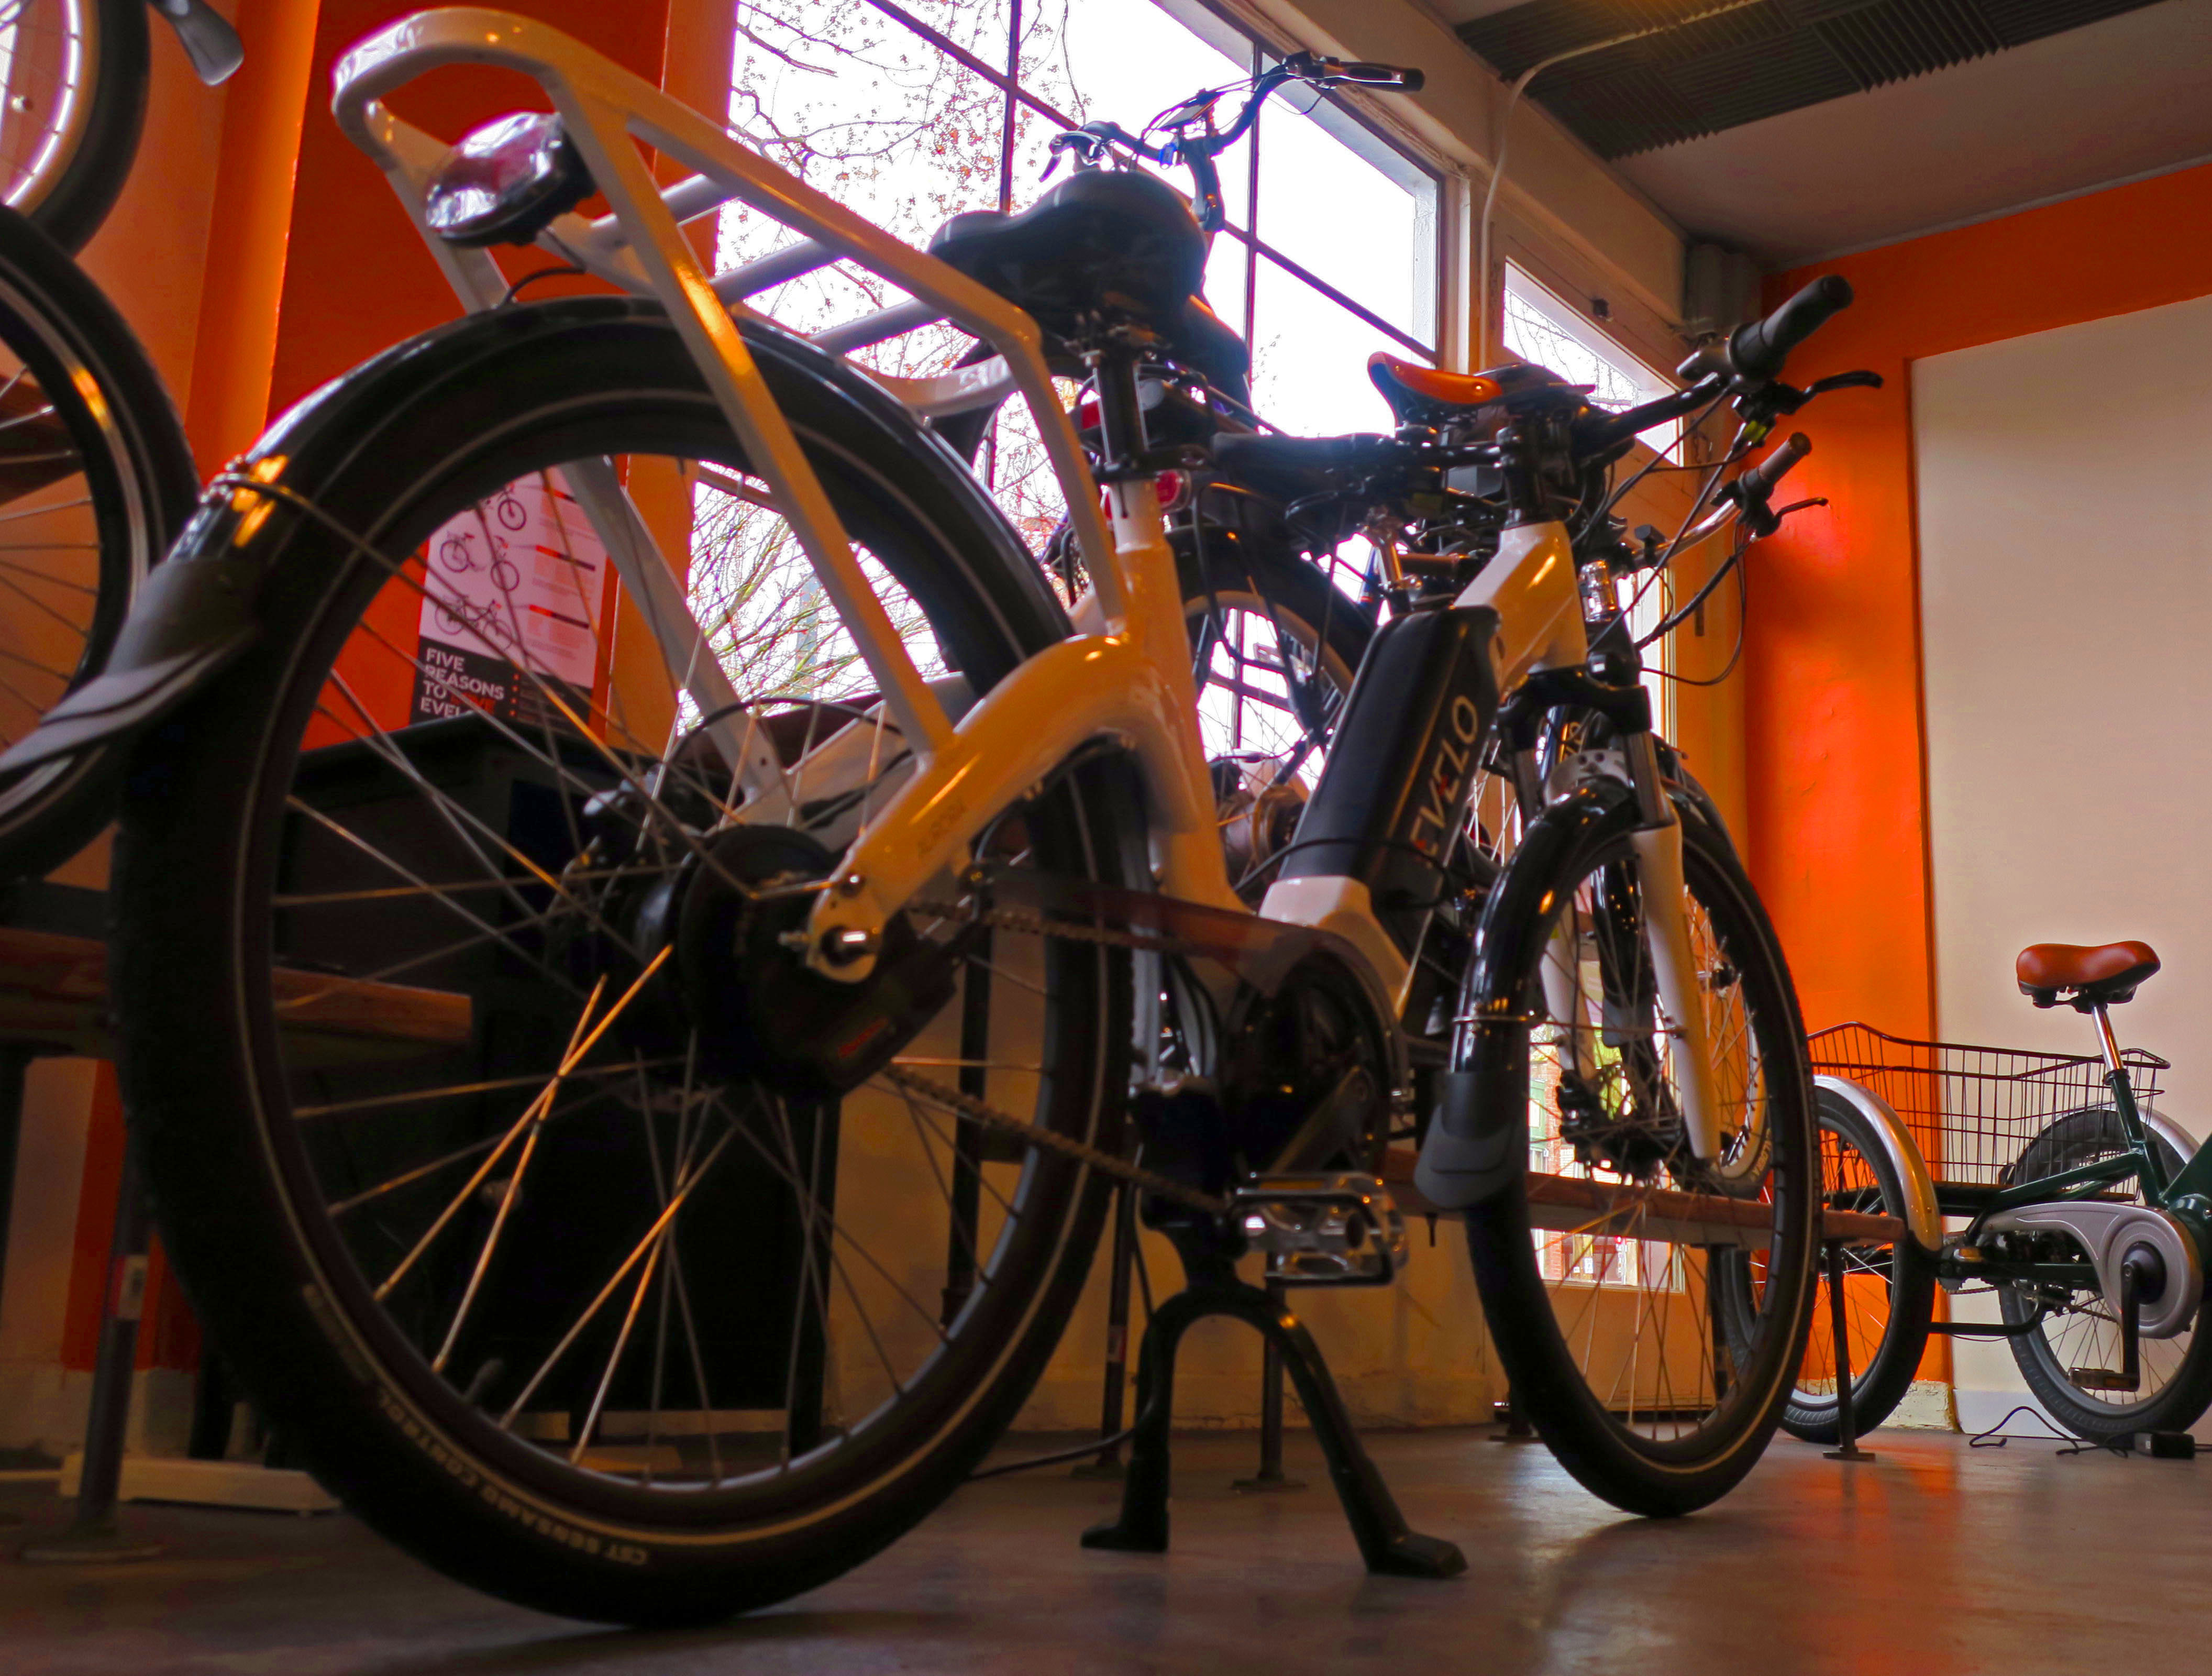 The Evelo showroom in the Madrona  Neighborhood features the companies direct-to-consumer e-bikes.